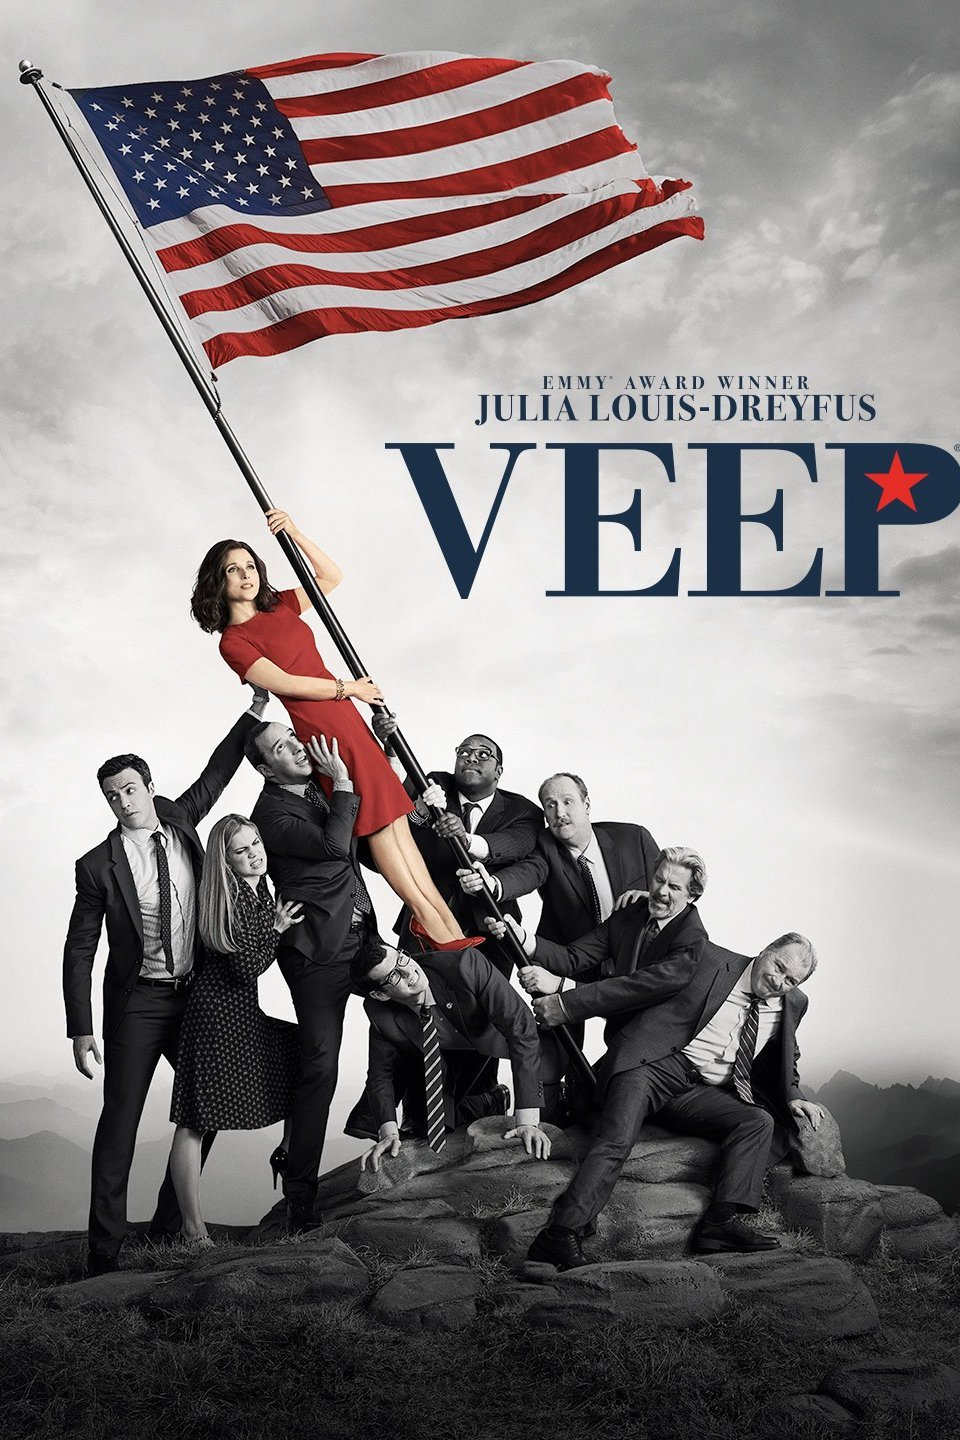 Veep Season 6 Episode 2 Download 480p WEB-DL 150MB